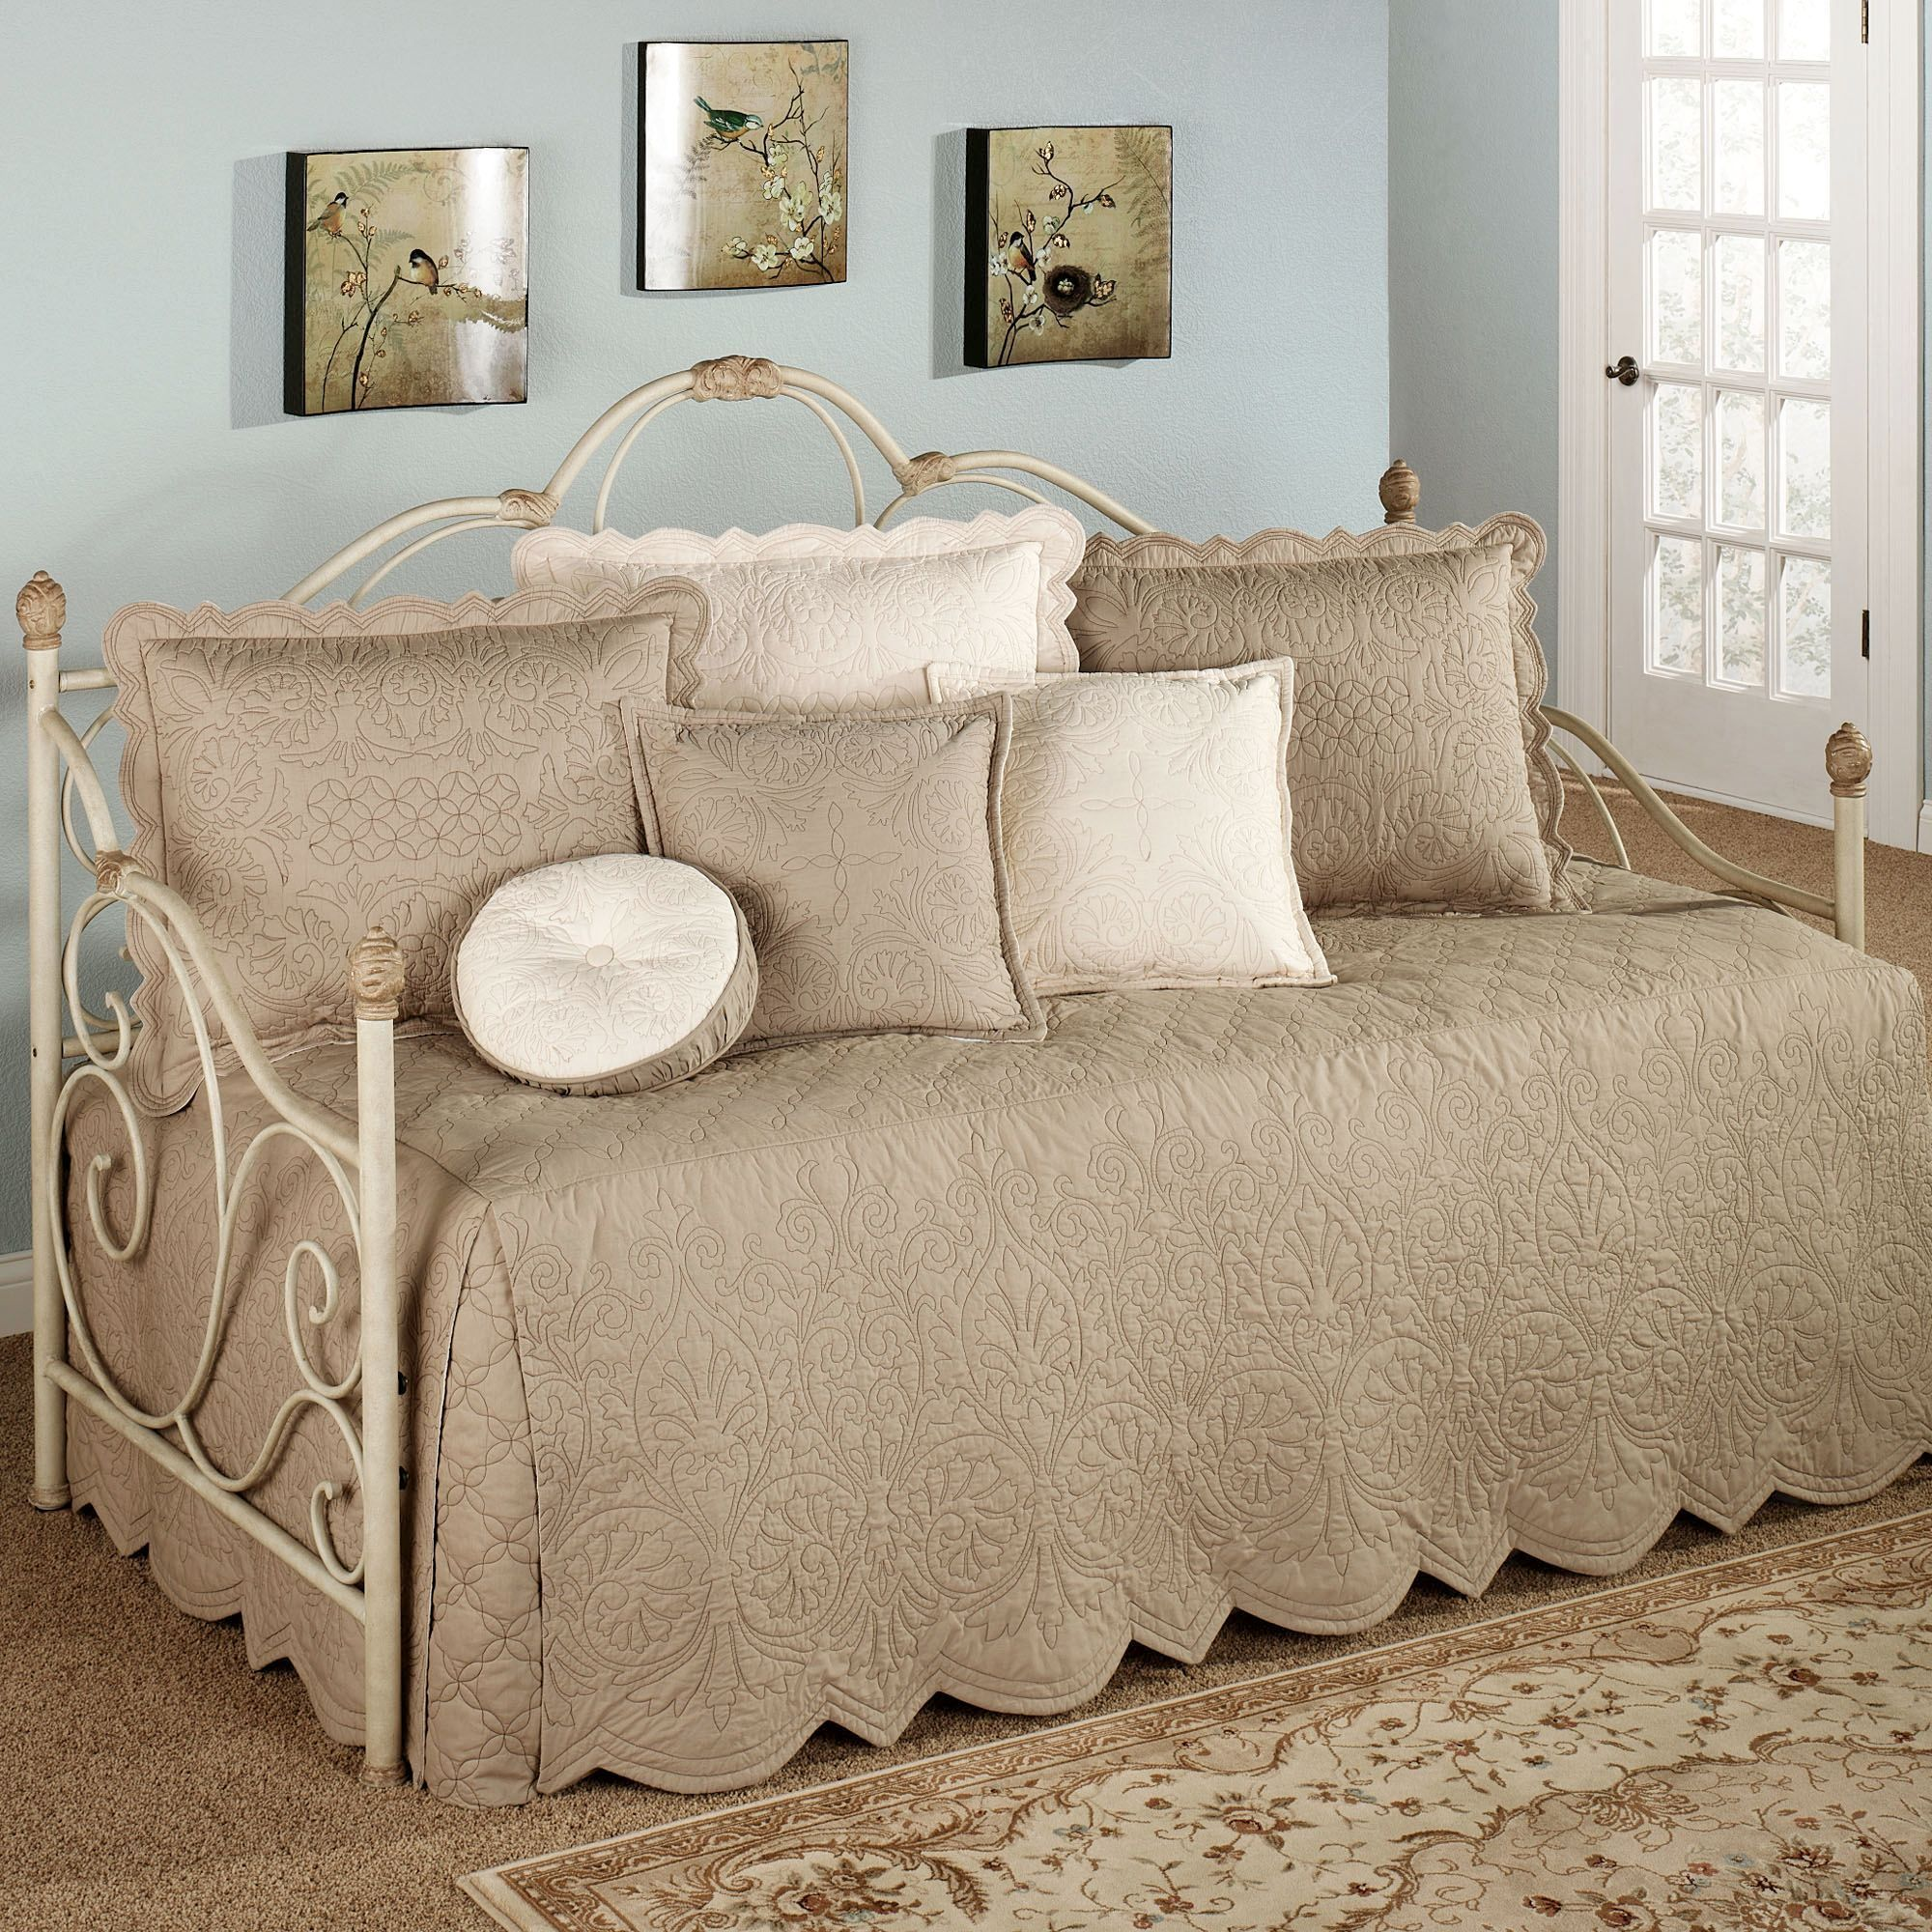 choosing quilts tips lustwithalaugh blue quilt design daybed